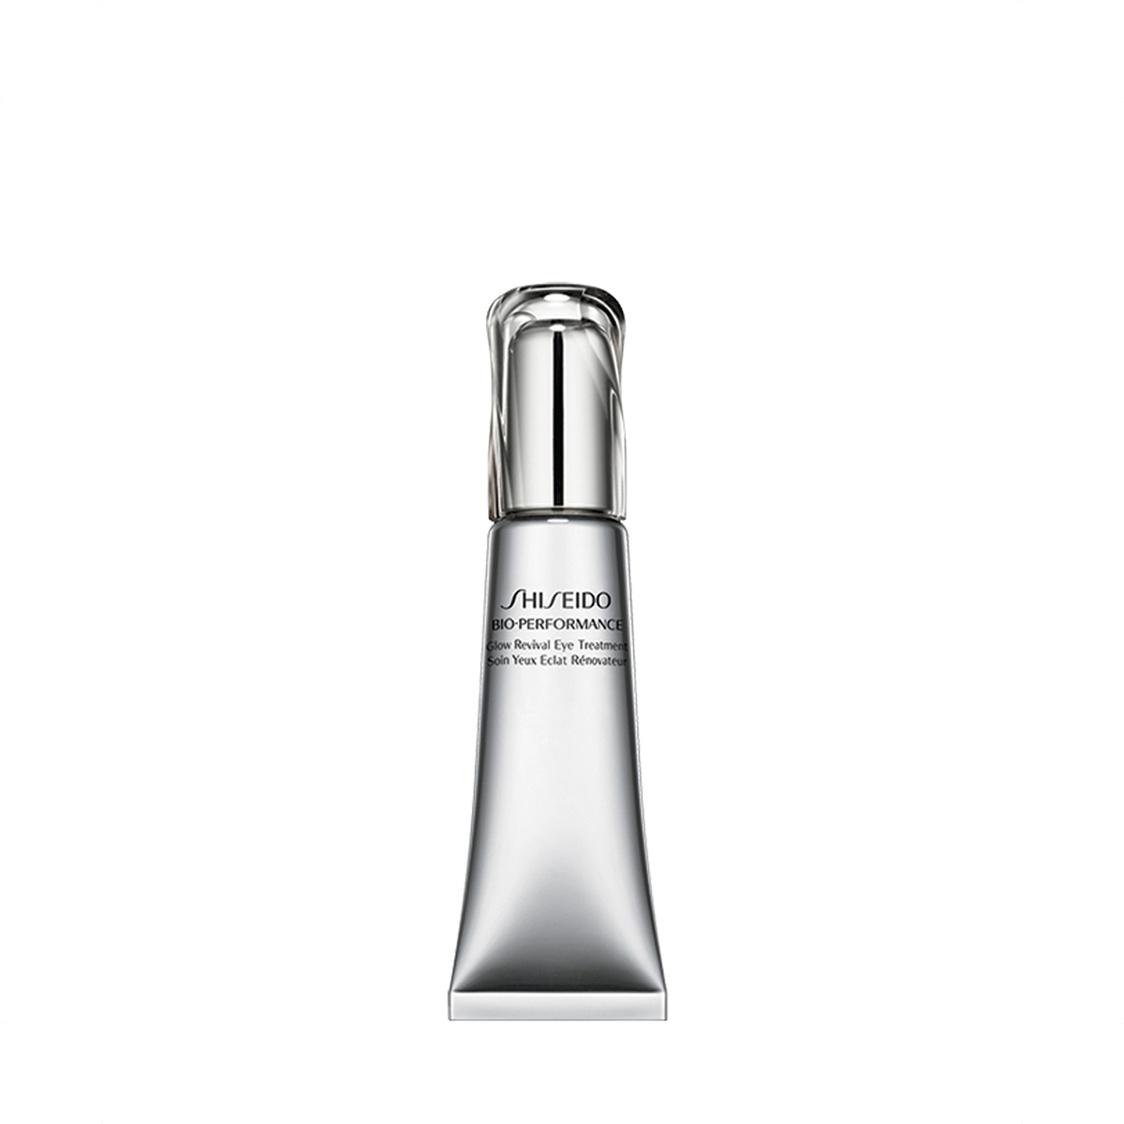 Shiseido Bio-Performance Glow Revival Eye Treatment  15ml